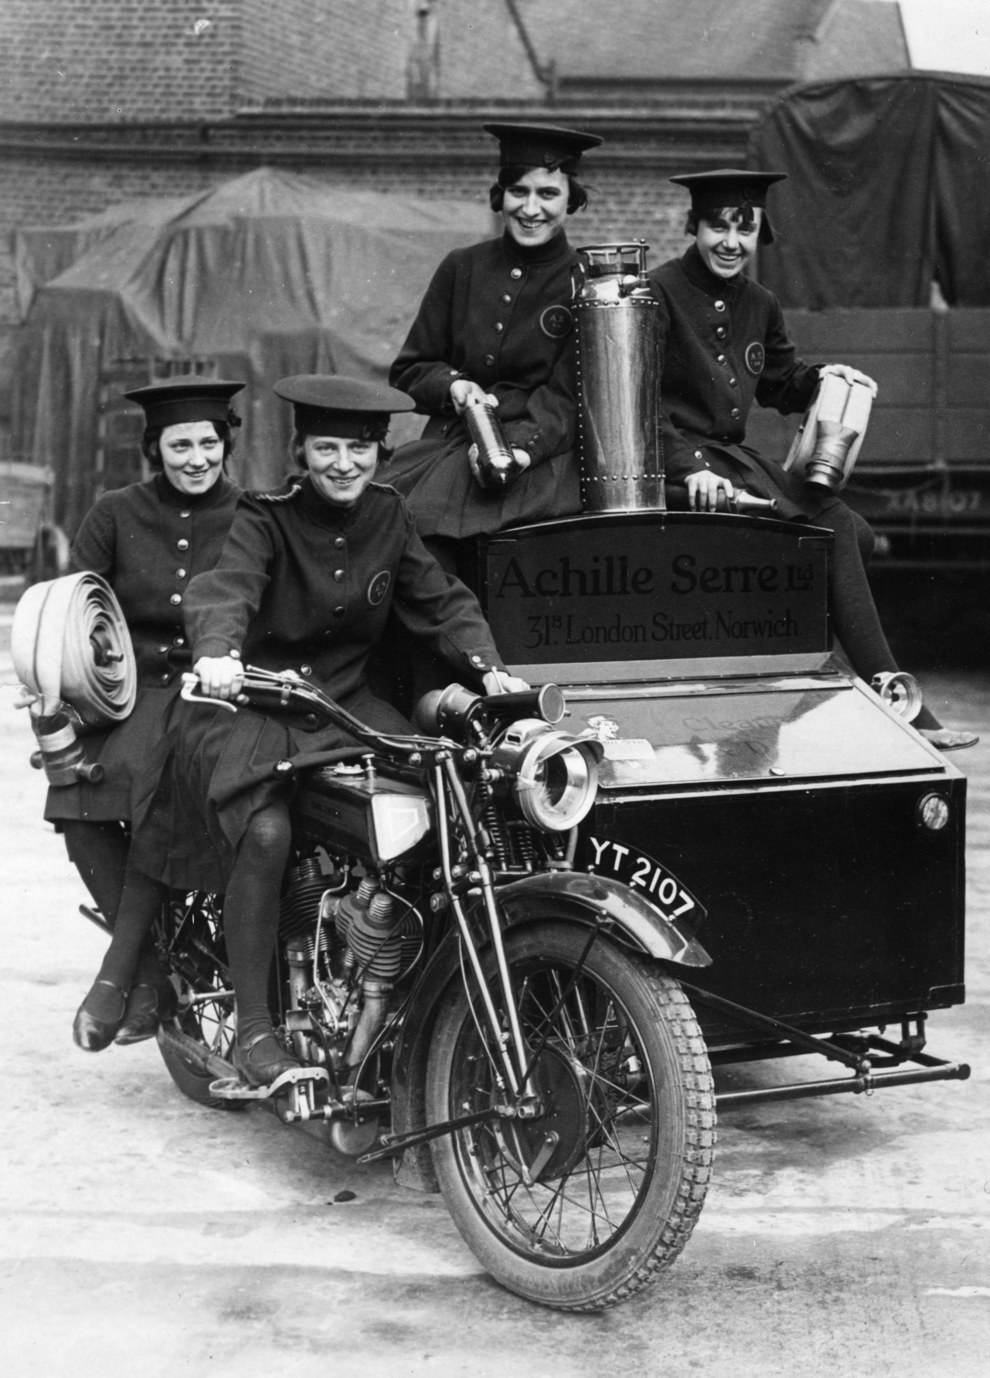 Royal Enfield sidecar fire-fighting outfit of 1925.